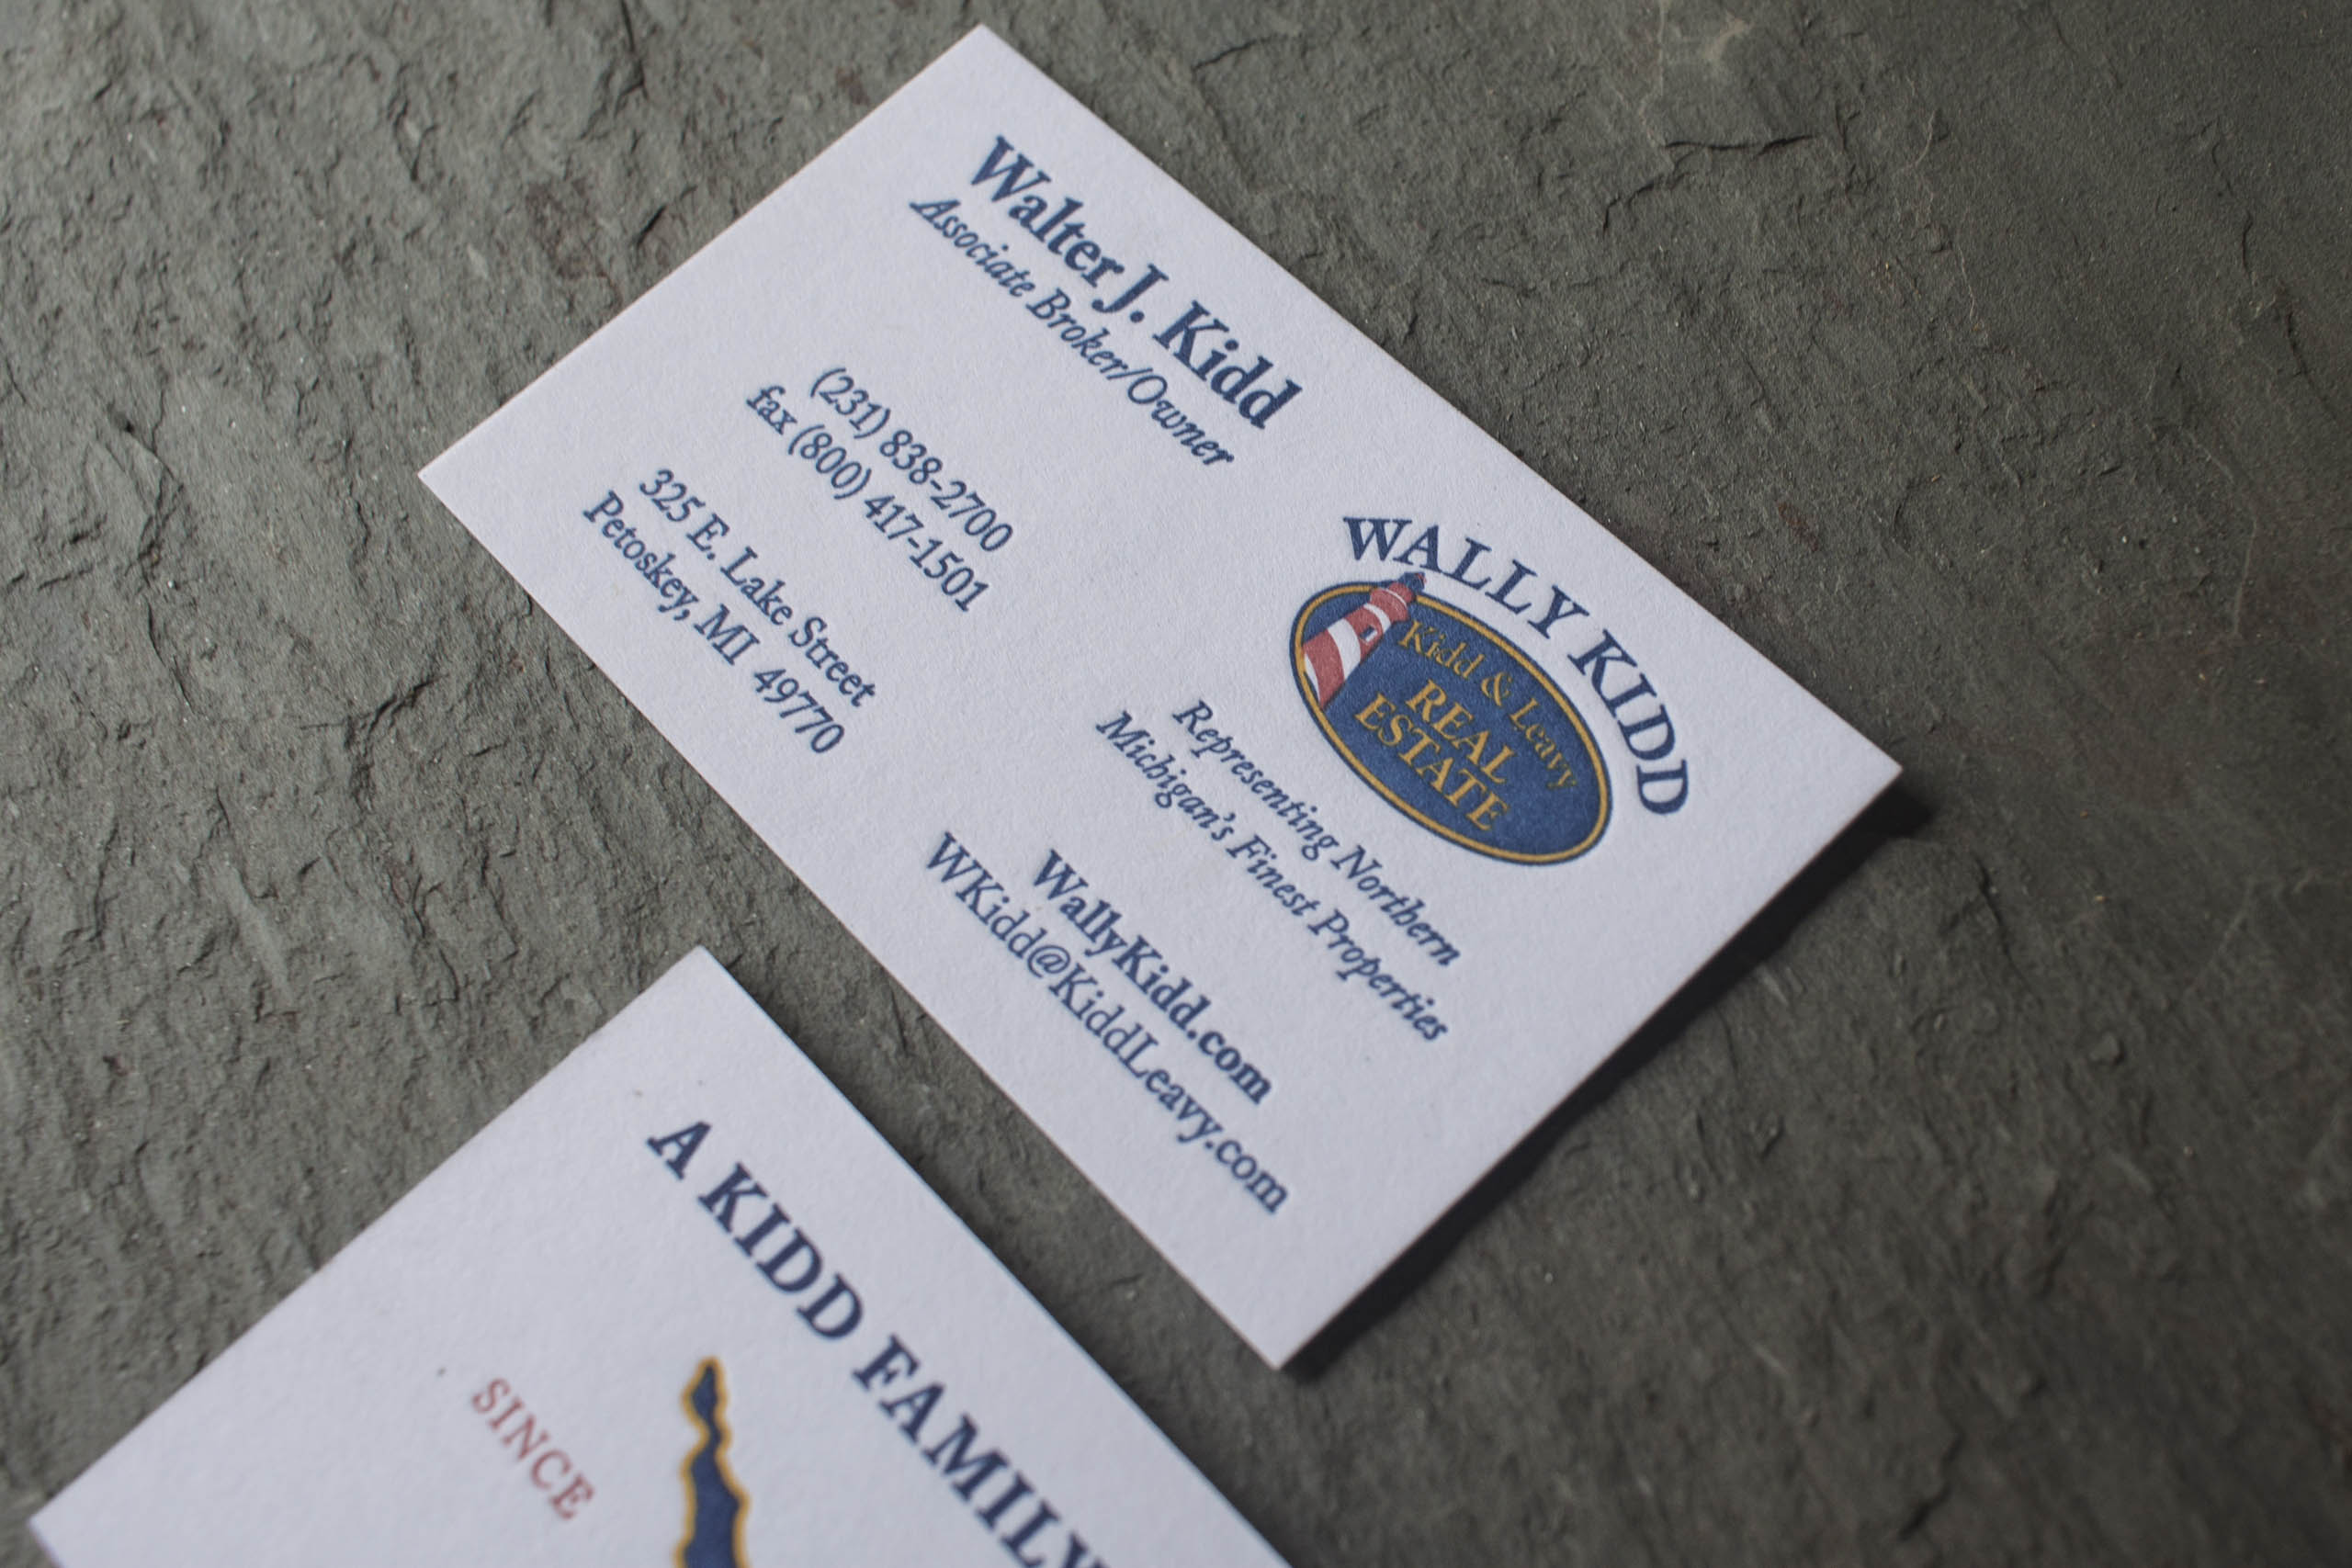 Luxury real estate business cards for wally kidd a fine press afp 2017324 5 reheart Gallery